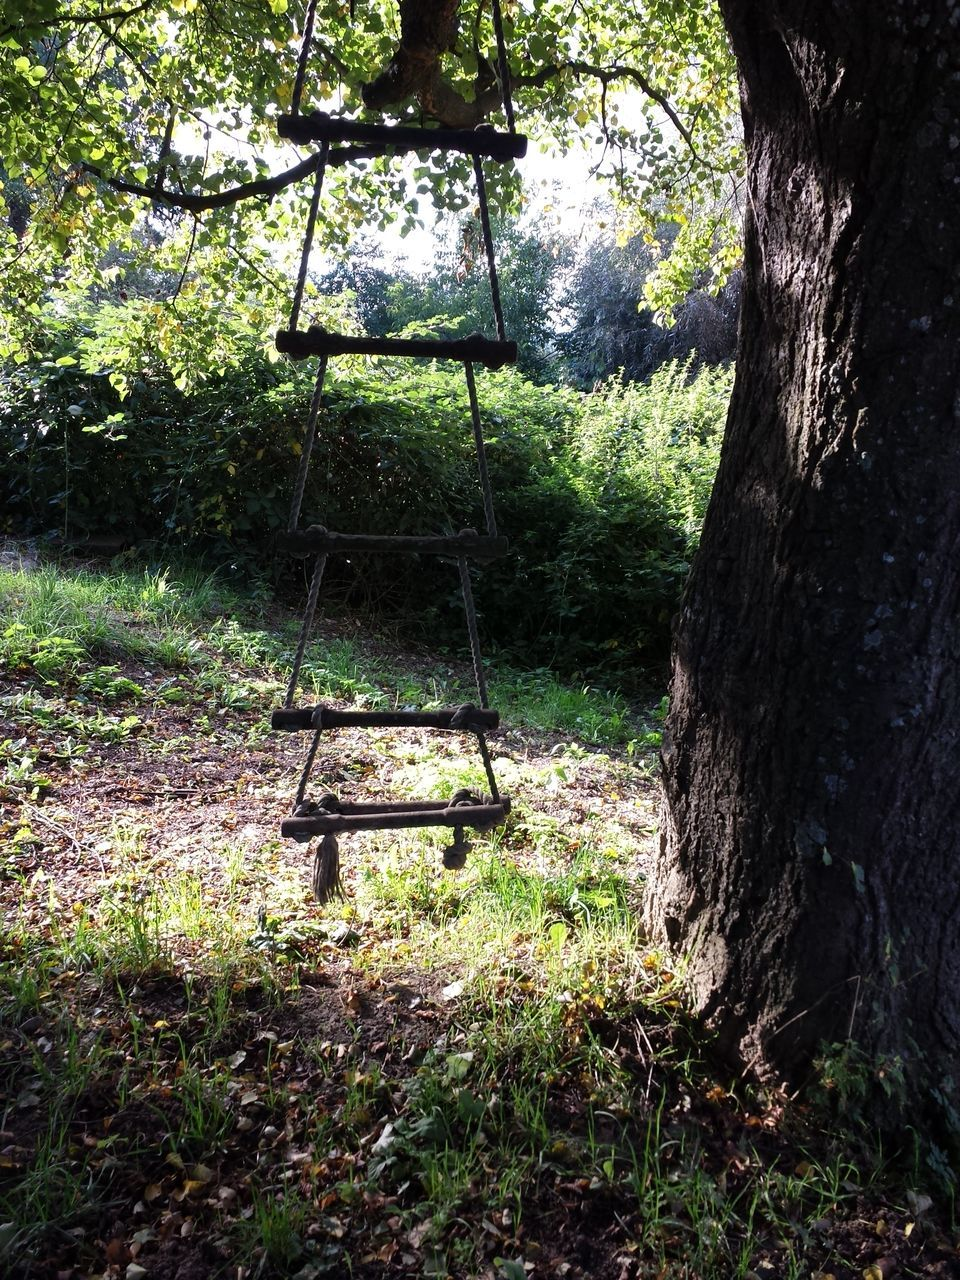 tree, swing, rope swing, tree trunk, hanging, day, no people, growth, park - man made space, outdoors, nature, grass, childhood